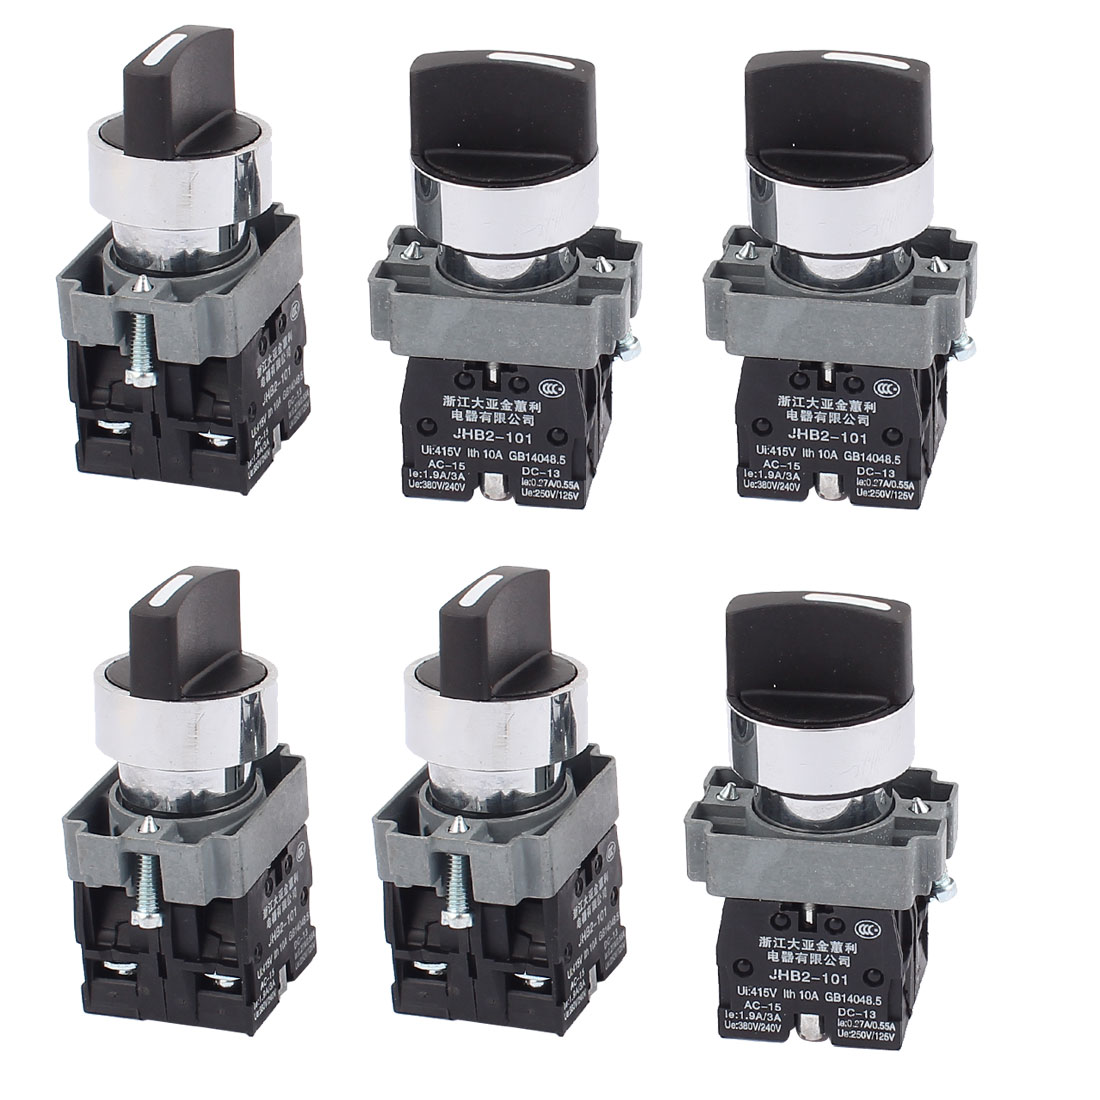 AC 415V 10A Latching 2NO 3 Positions Rotary Selector Switch 6PCS